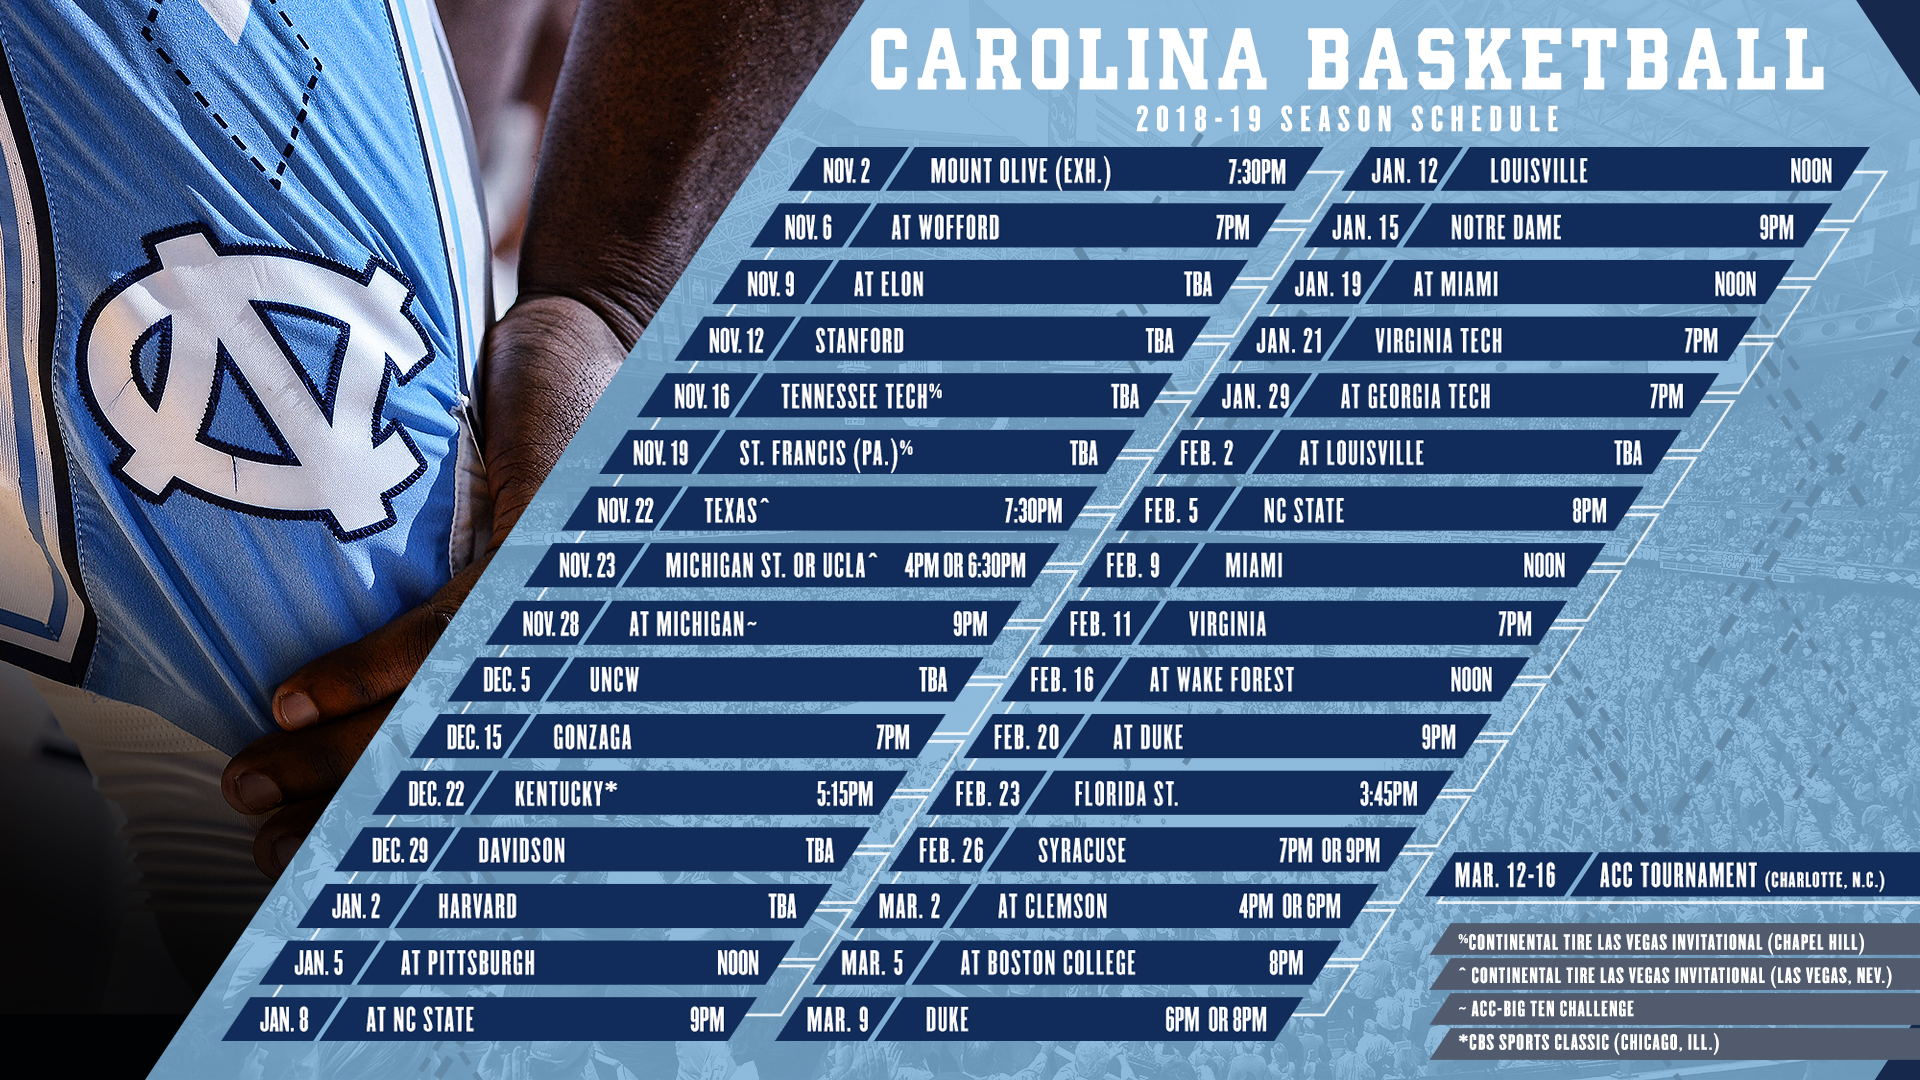 photo about Kentucky Basketball Schedule Printable named Tar Heels Facial area Yet another Arduous Agenda Inside of 2018-19